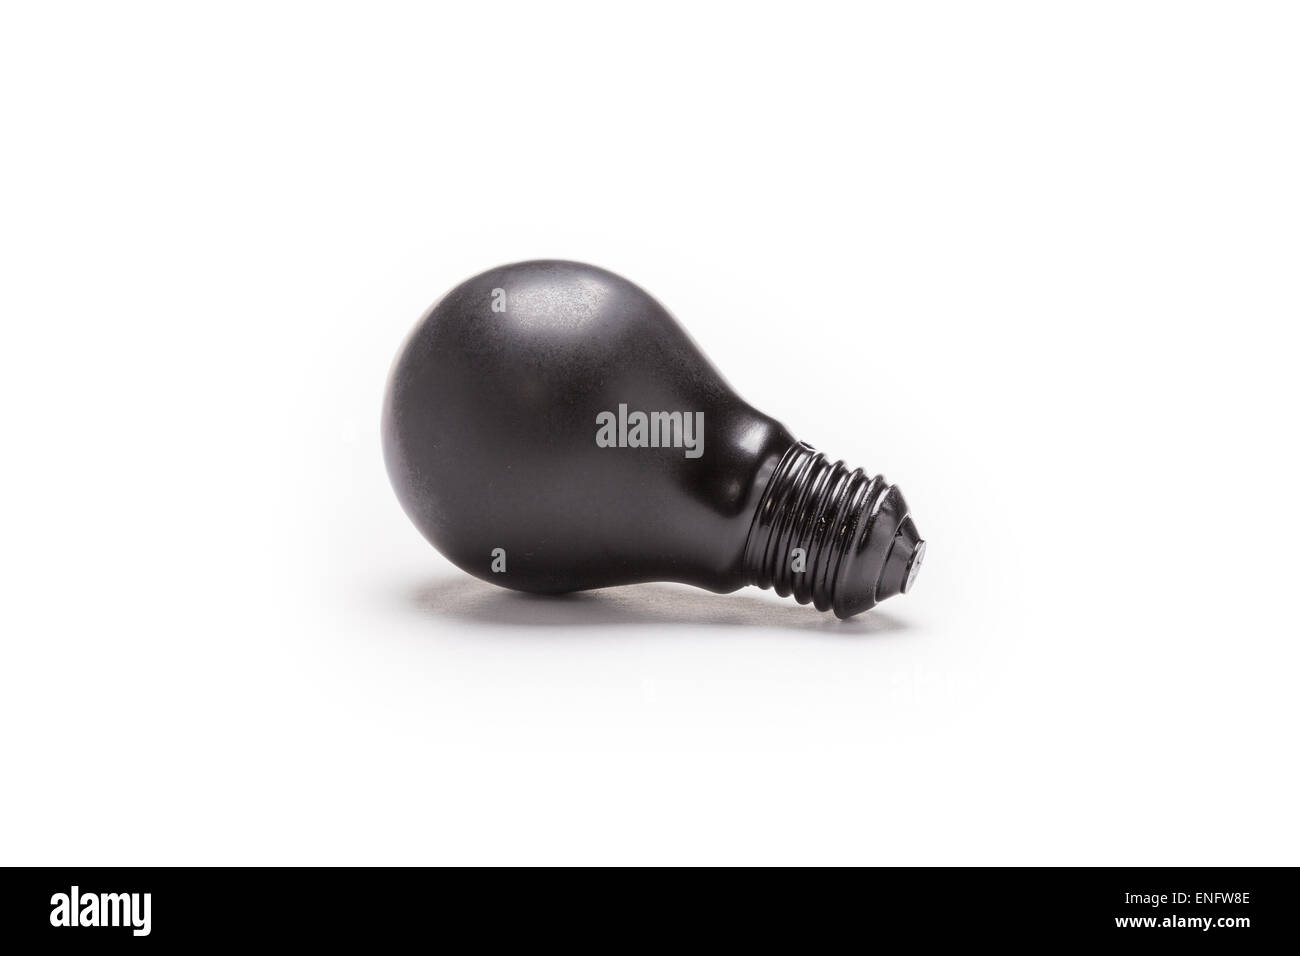 Painted Light Bulb On A White Background For Concept As Energy And Recycling